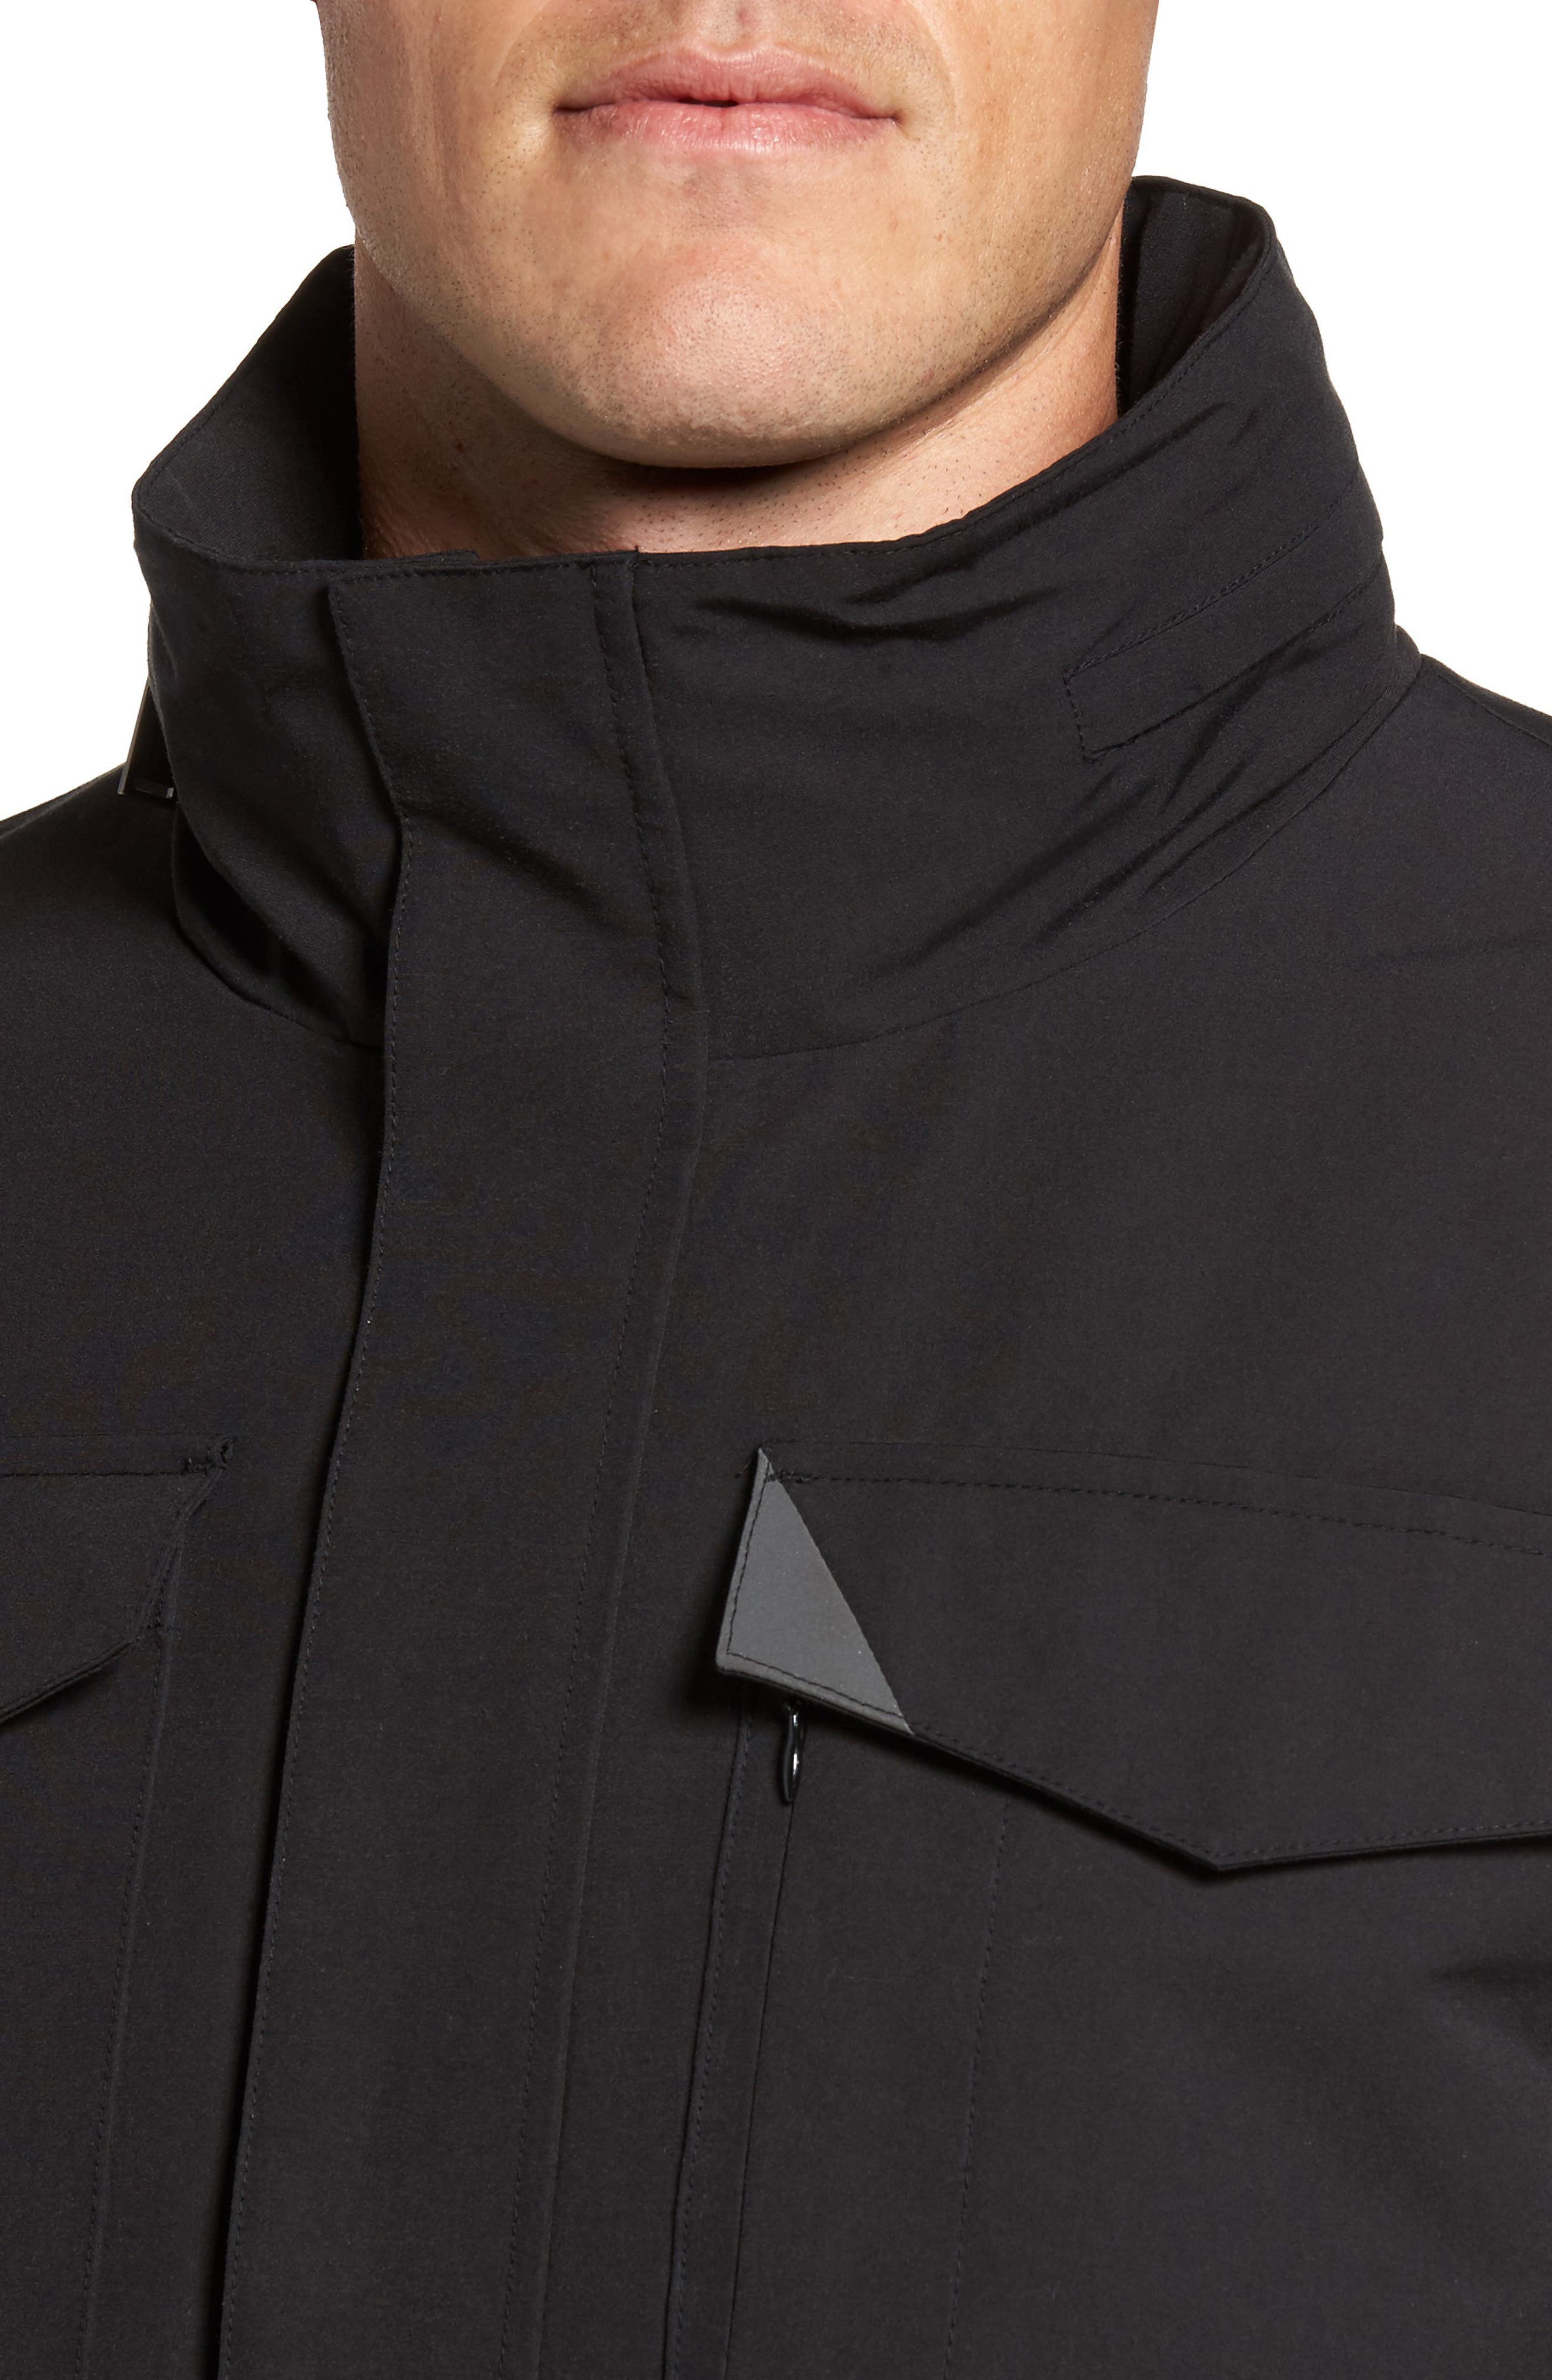 Clyde Hill Waterproof Field Jacket,                             Alternate thumbnail 4, color,                             001